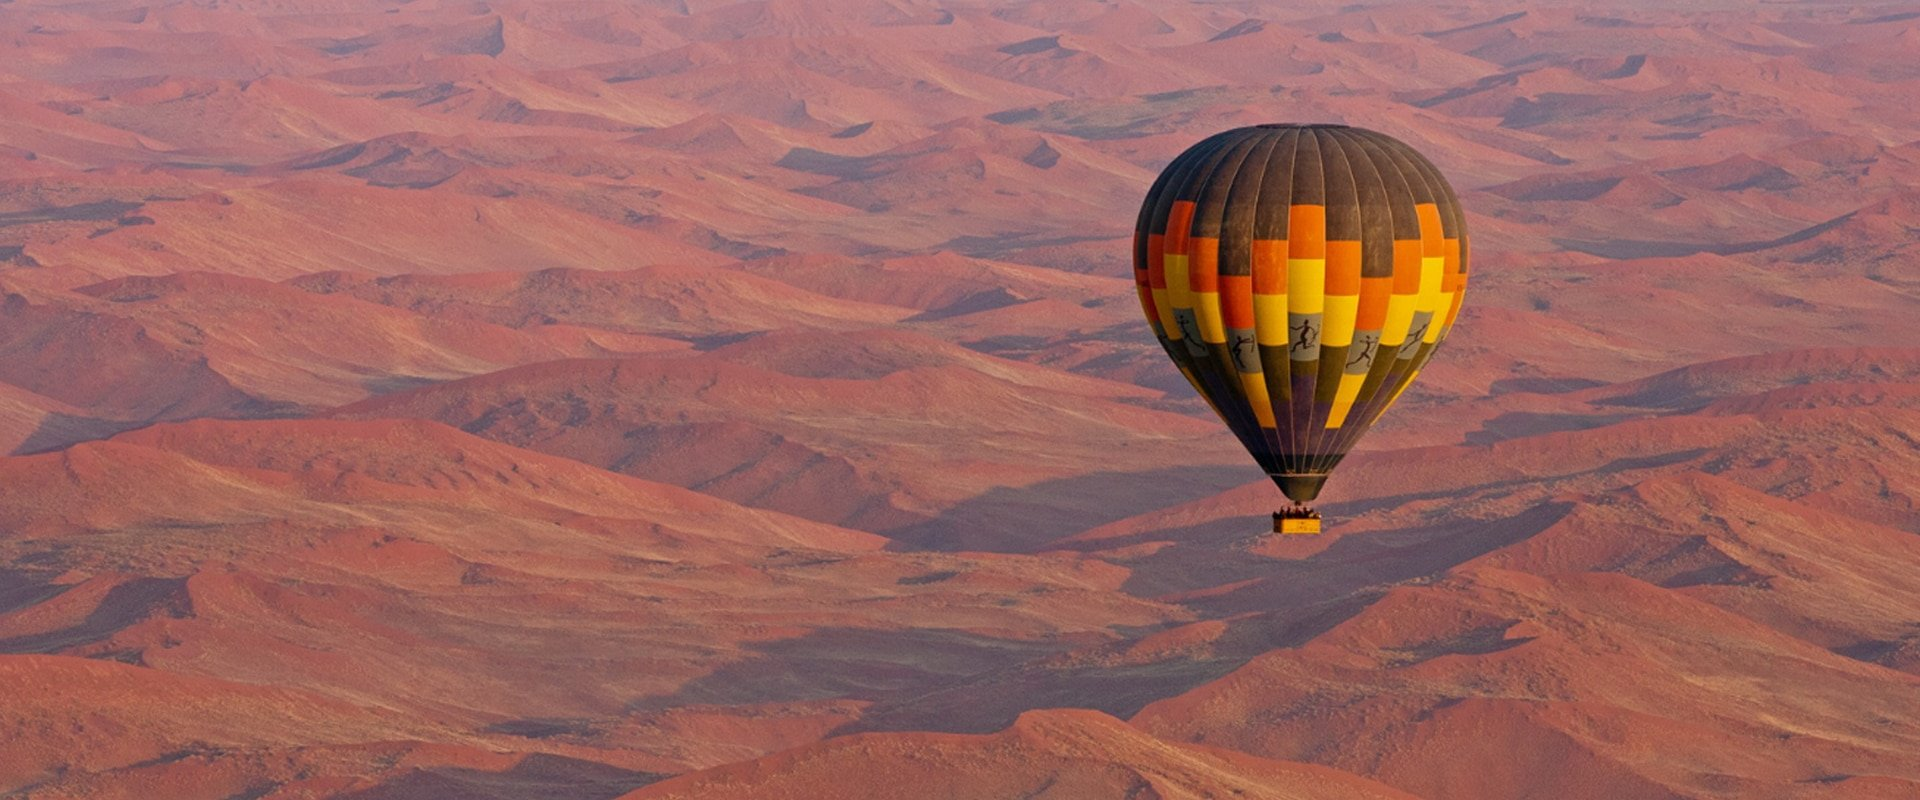 Float around in a hot-air balloon